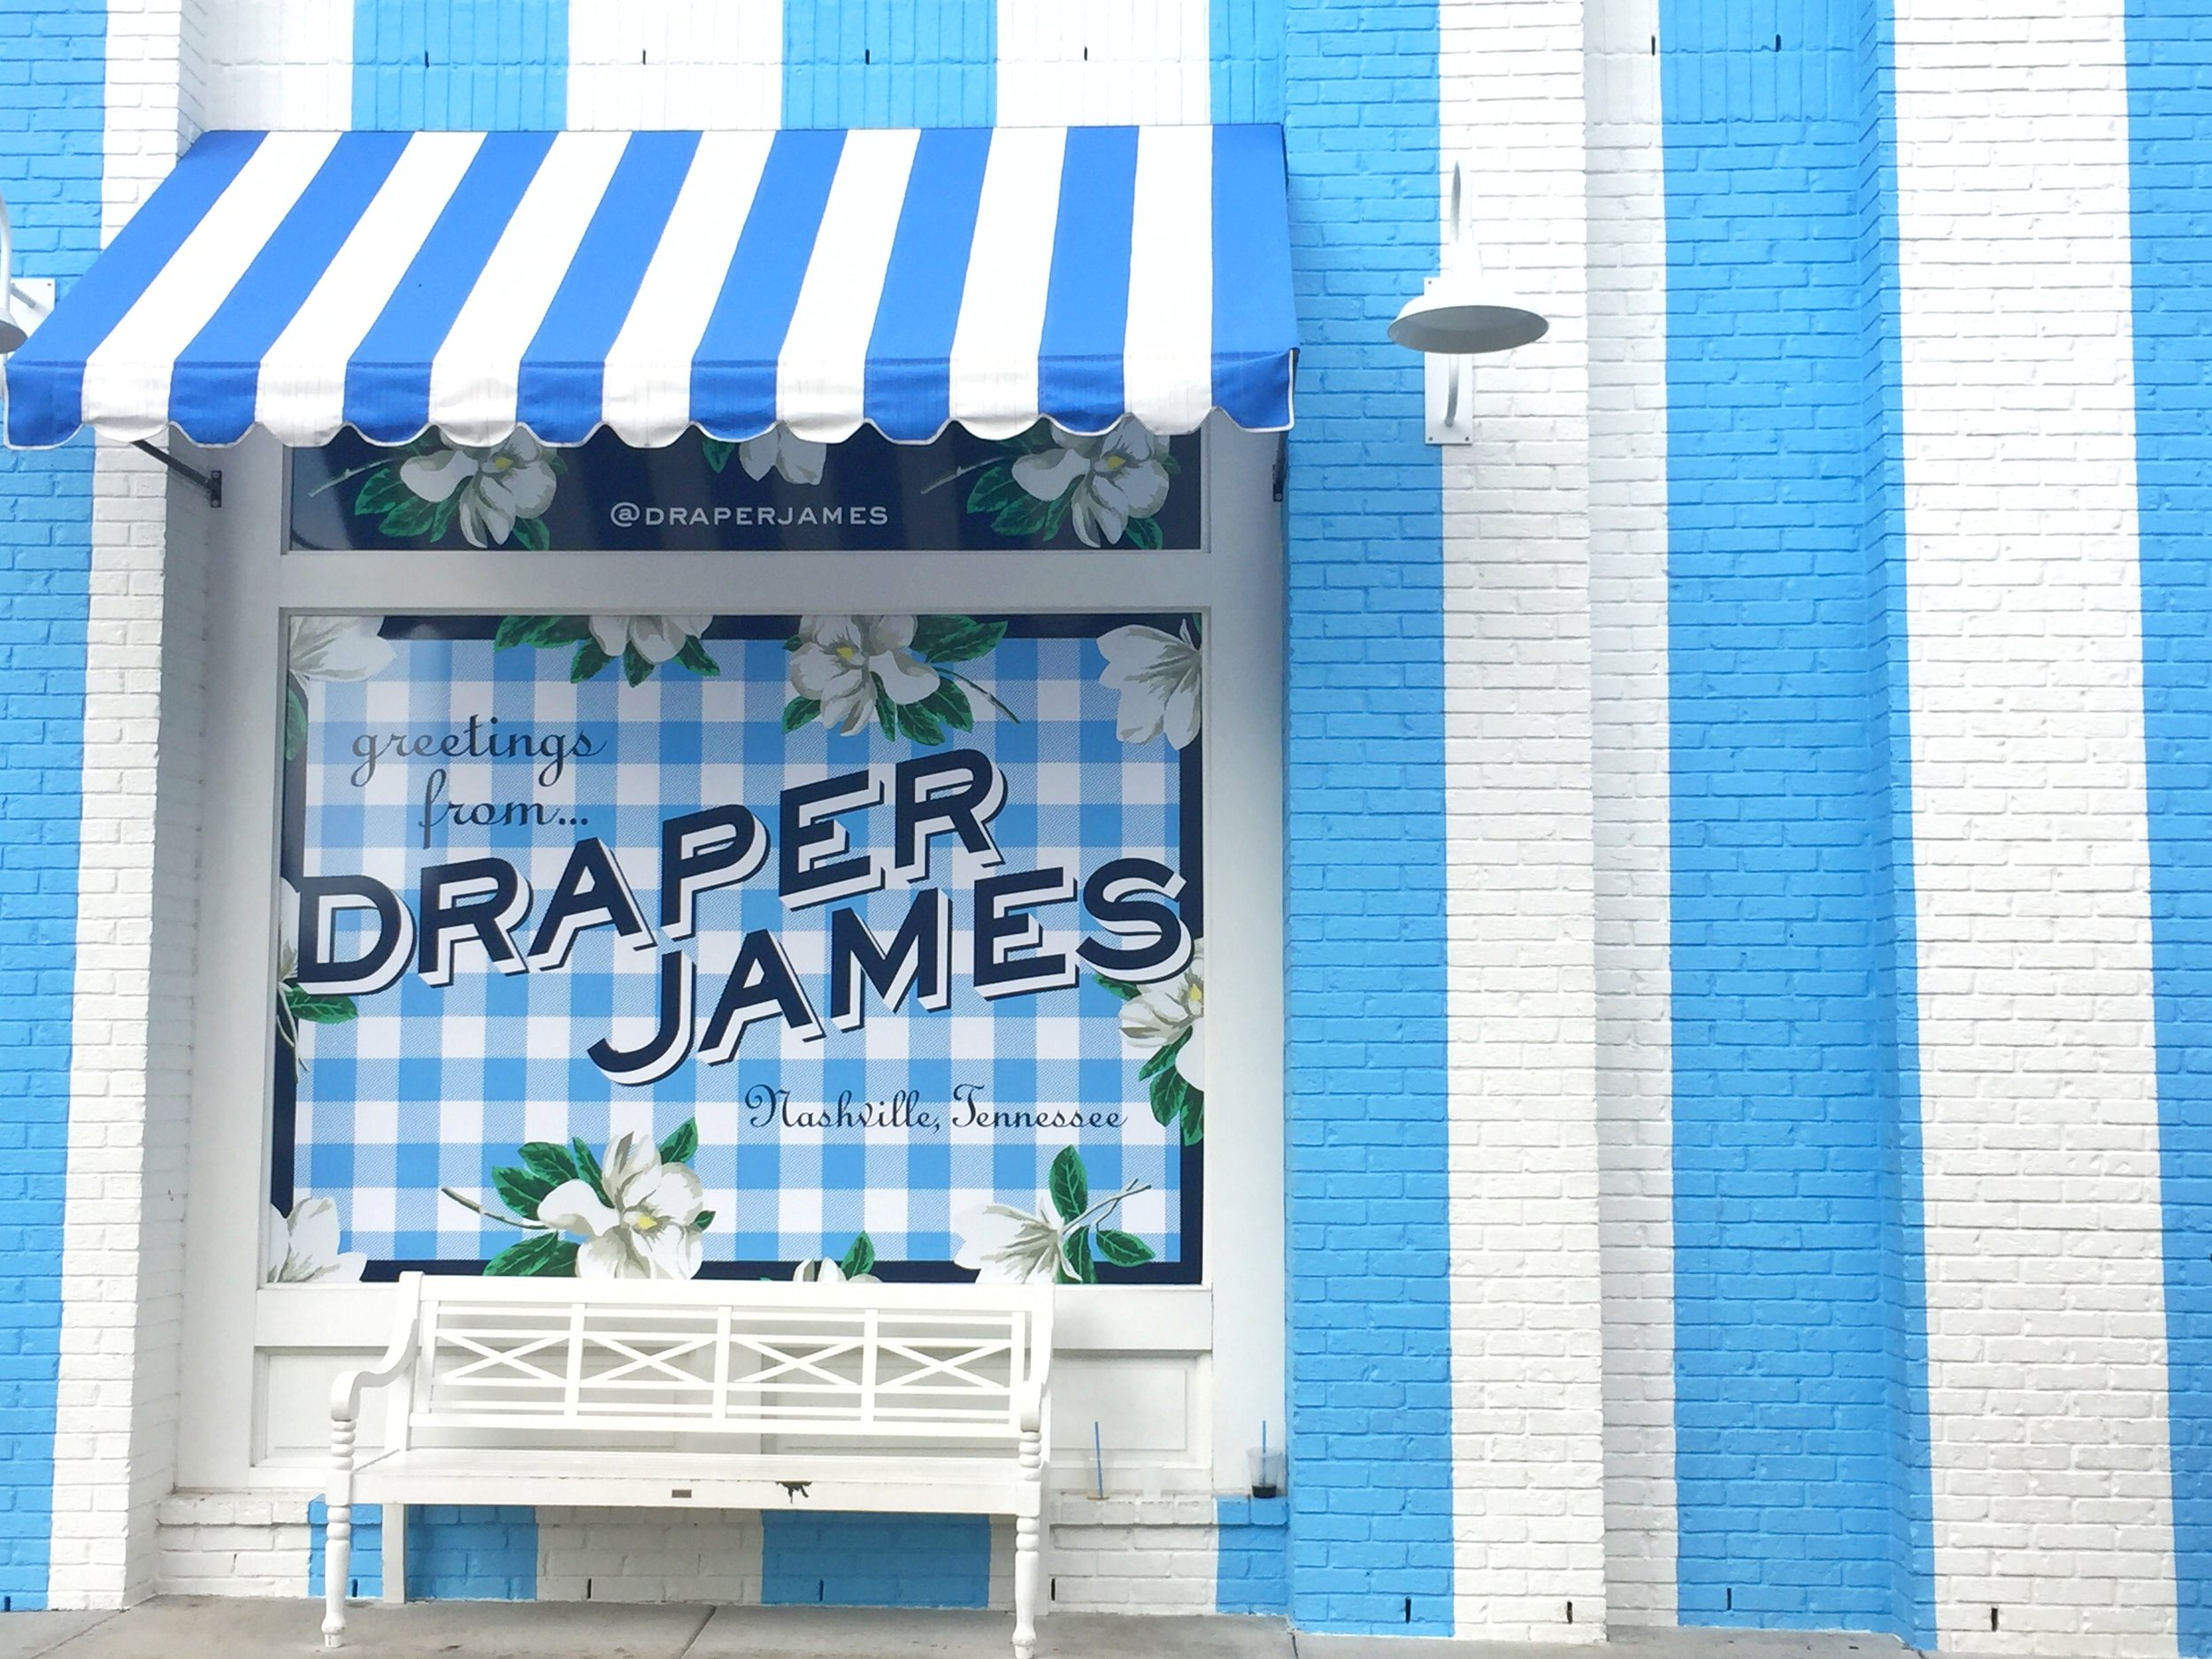 Disclosure: I will earn commission if you make a purchase from the Draper James links below.